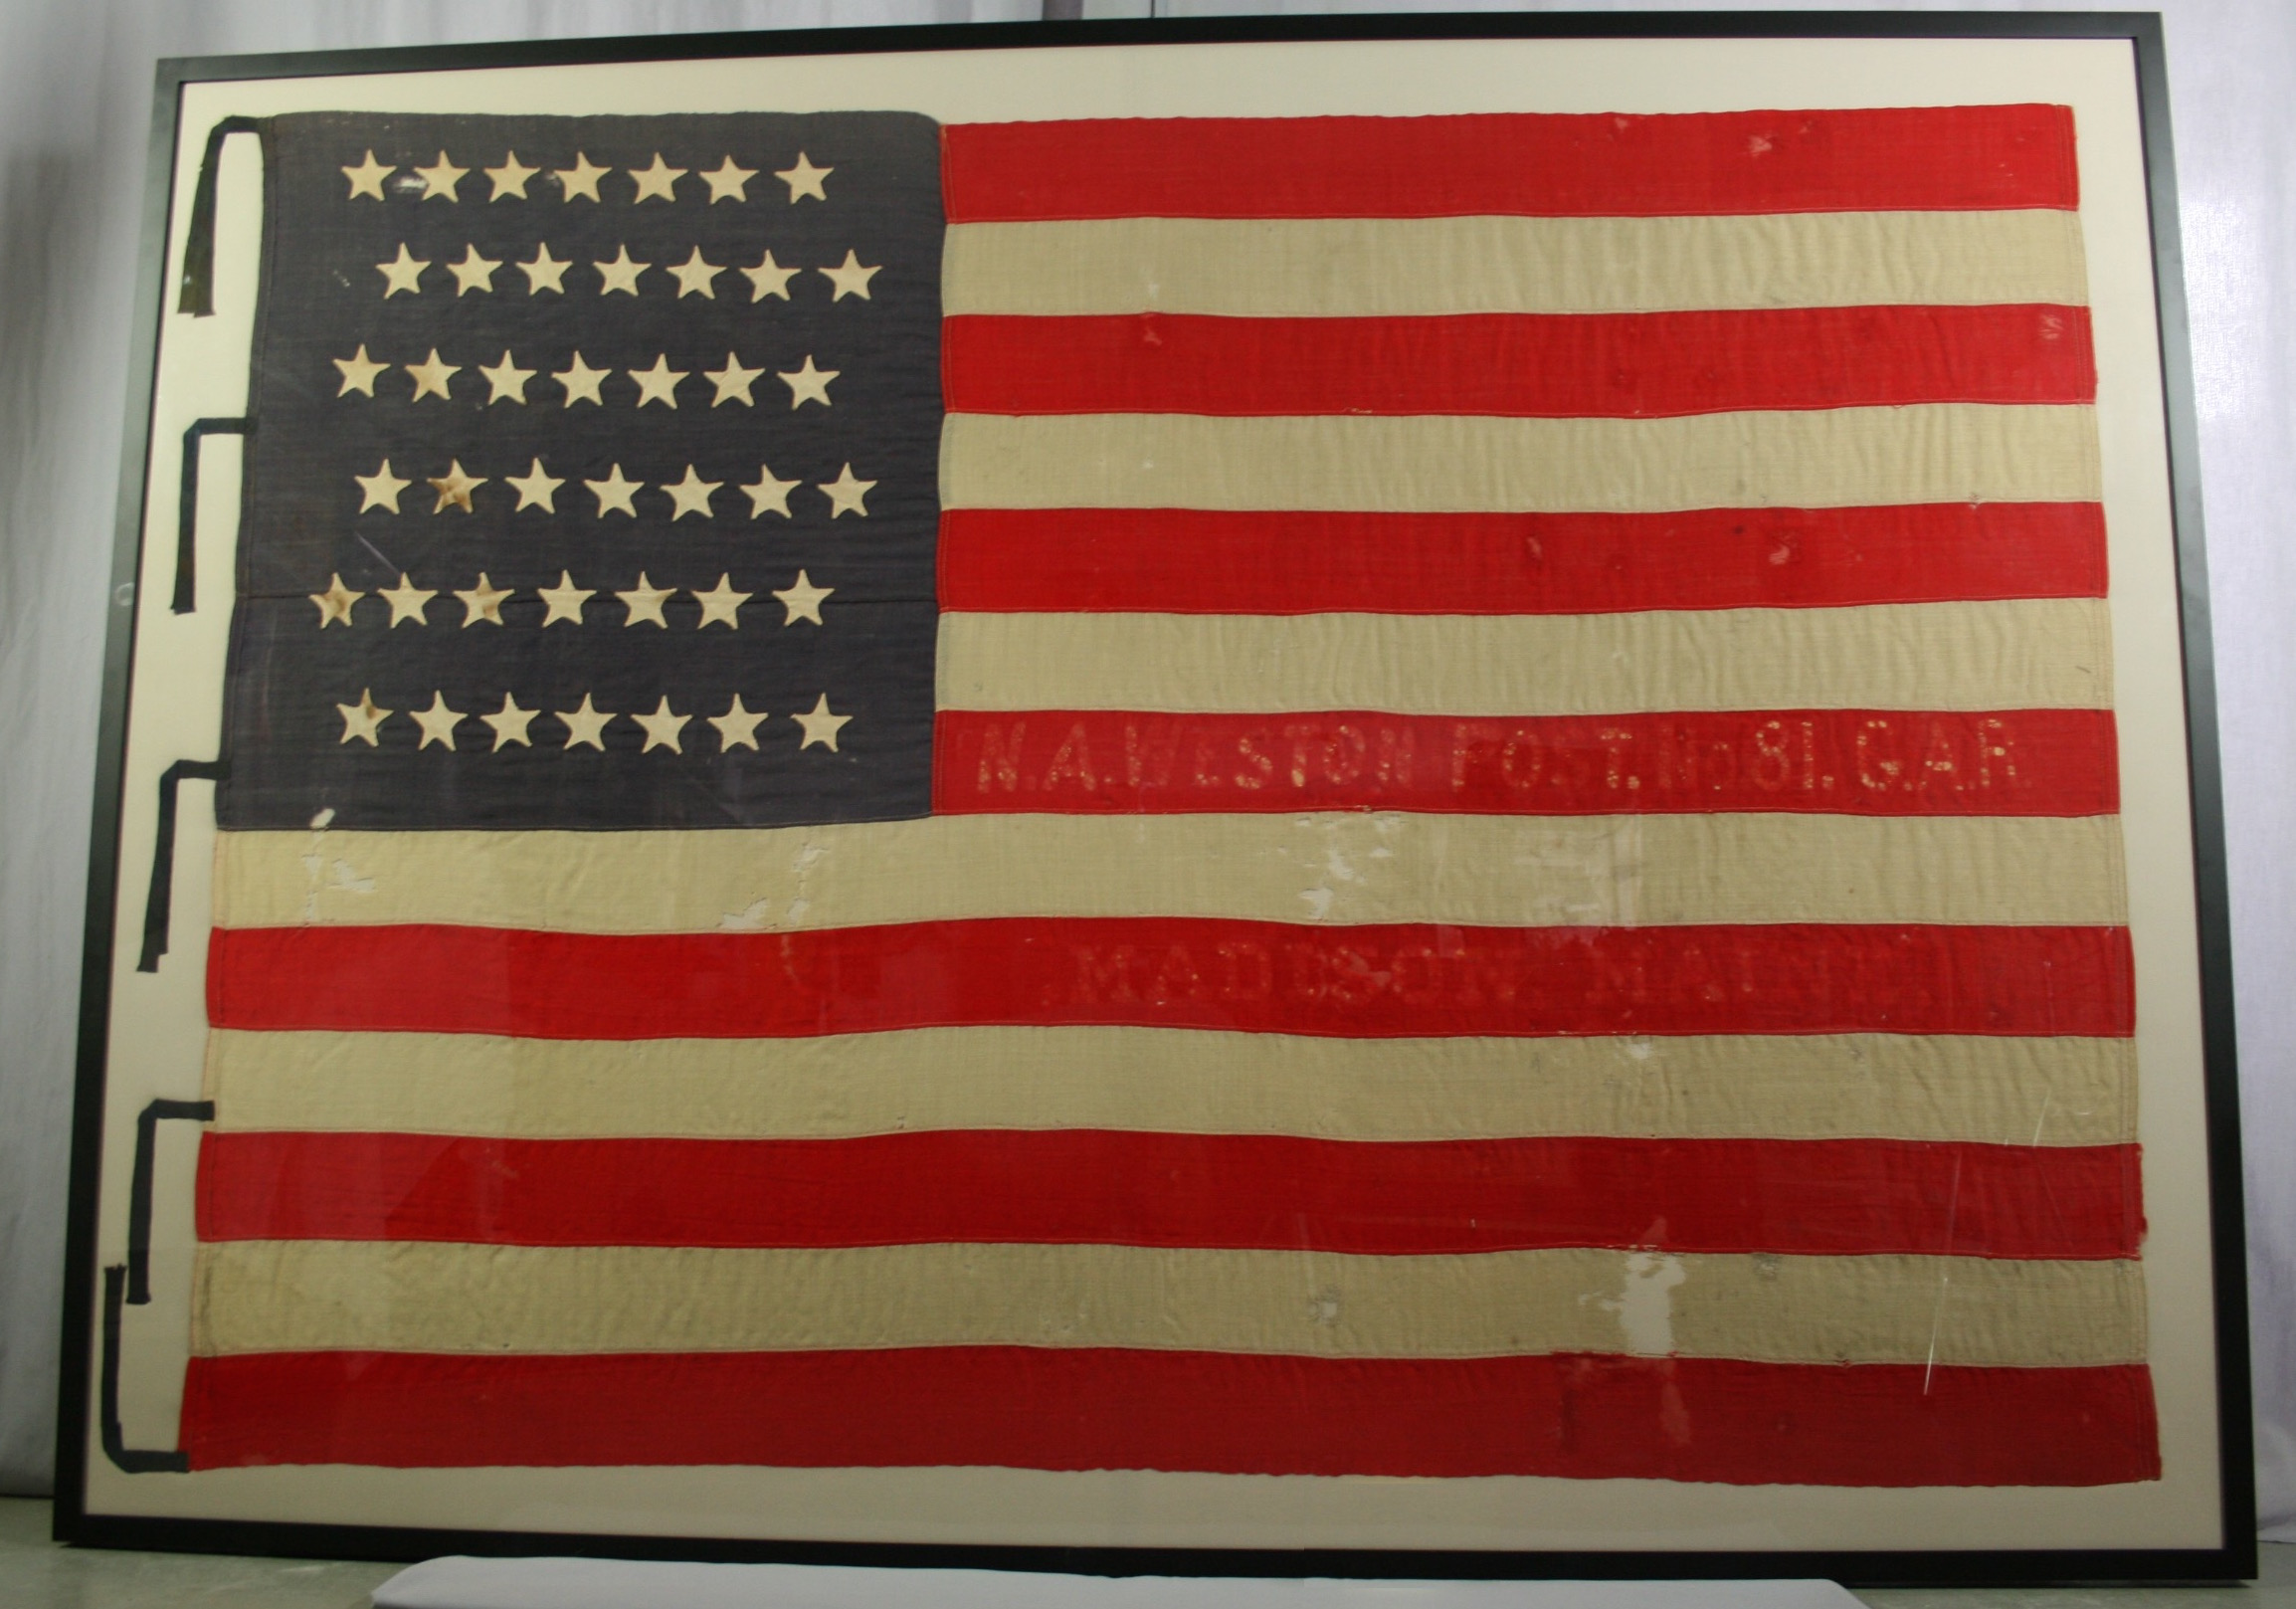 Pressure mount of historically significant American flag by Spicer Art Conservation, experts in the care and preservation of flags, banners, and textiles.